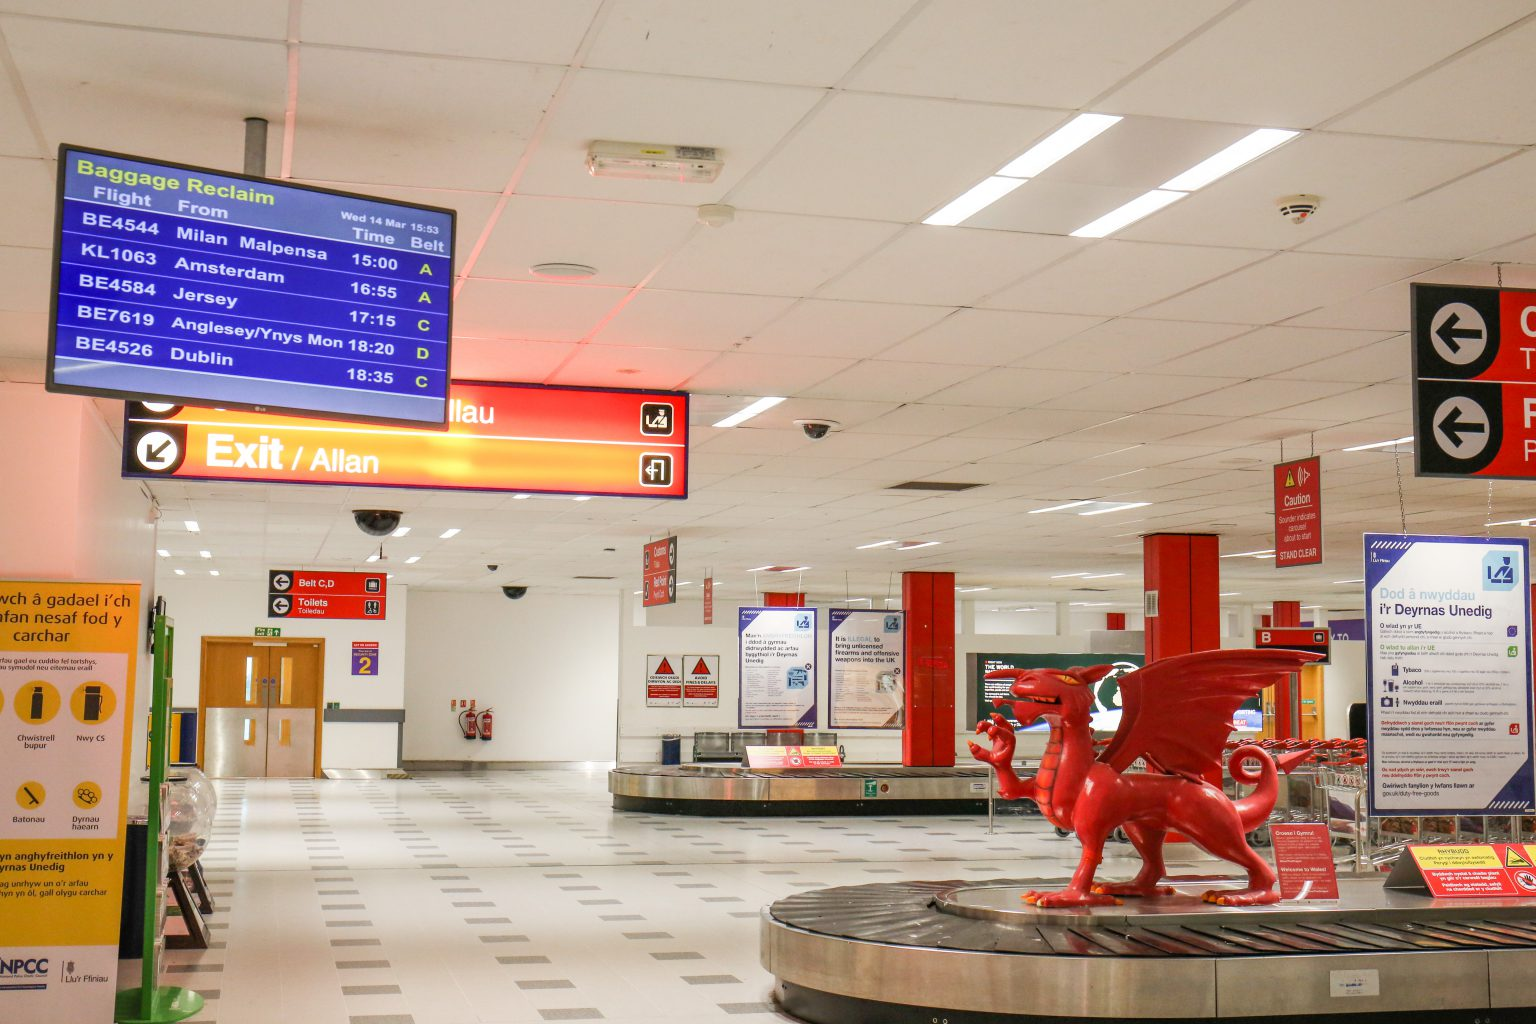 Baggage belt information screen at Cardiff Airport